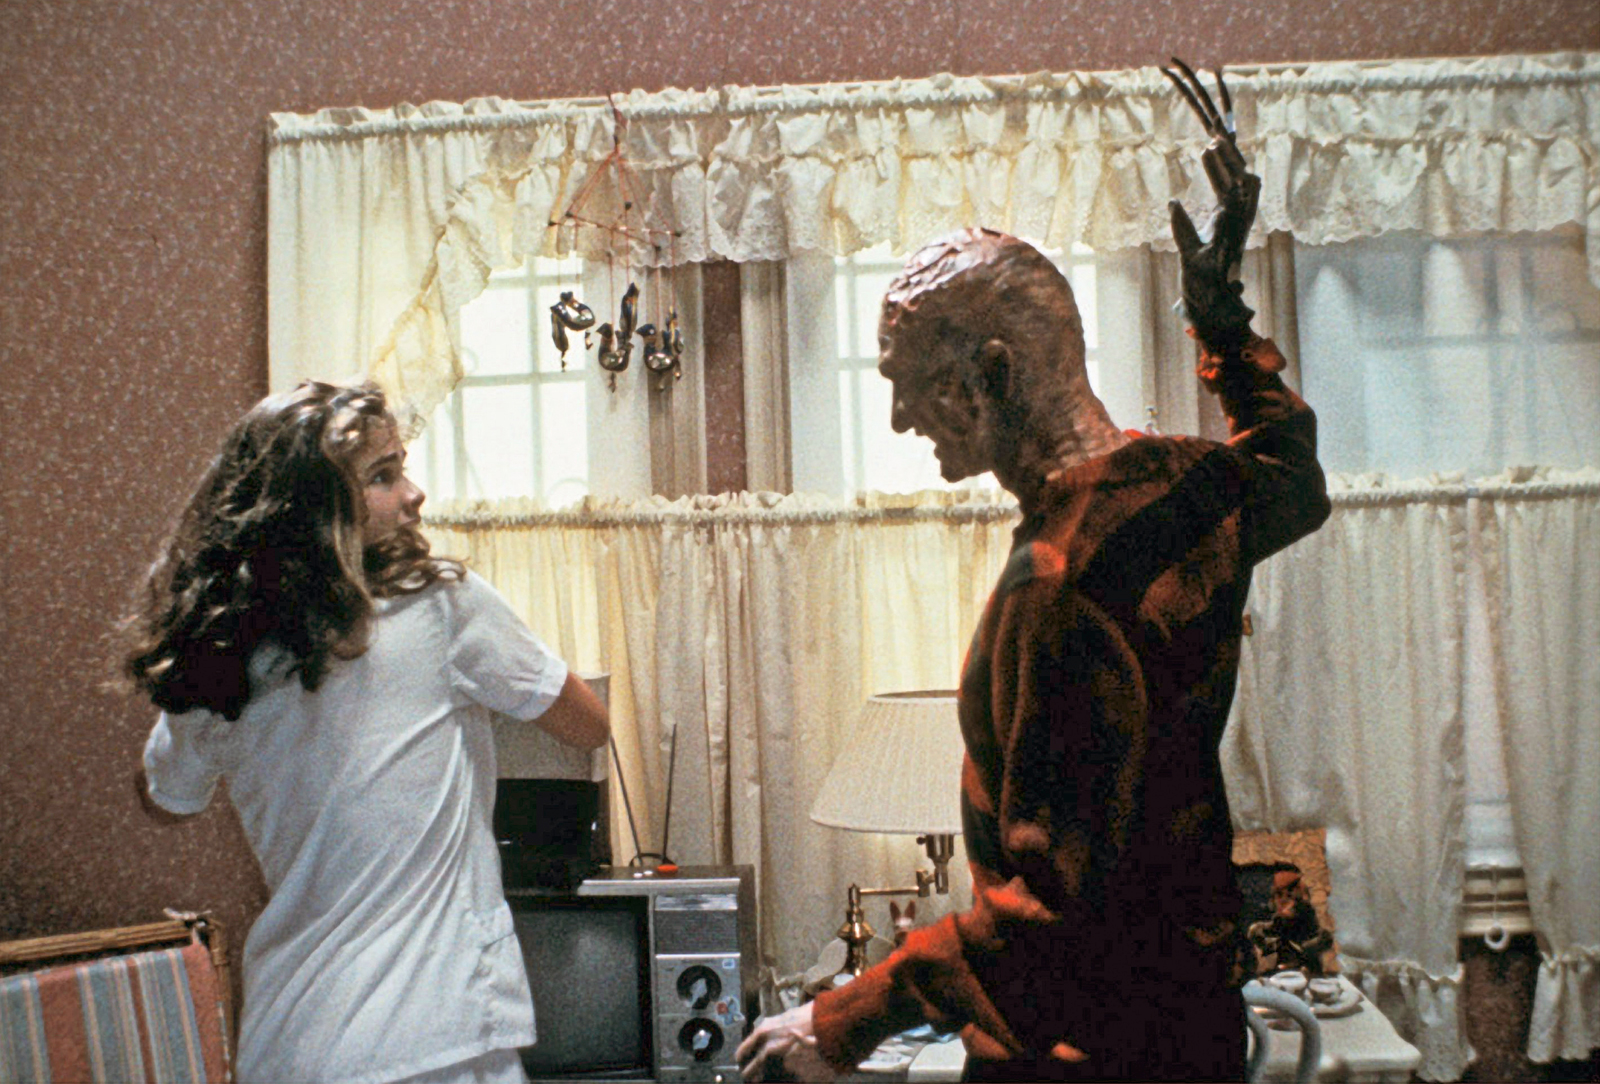 35 Years Later: 'A Nightmare On Elm Street' Is An Important, Dark Dream